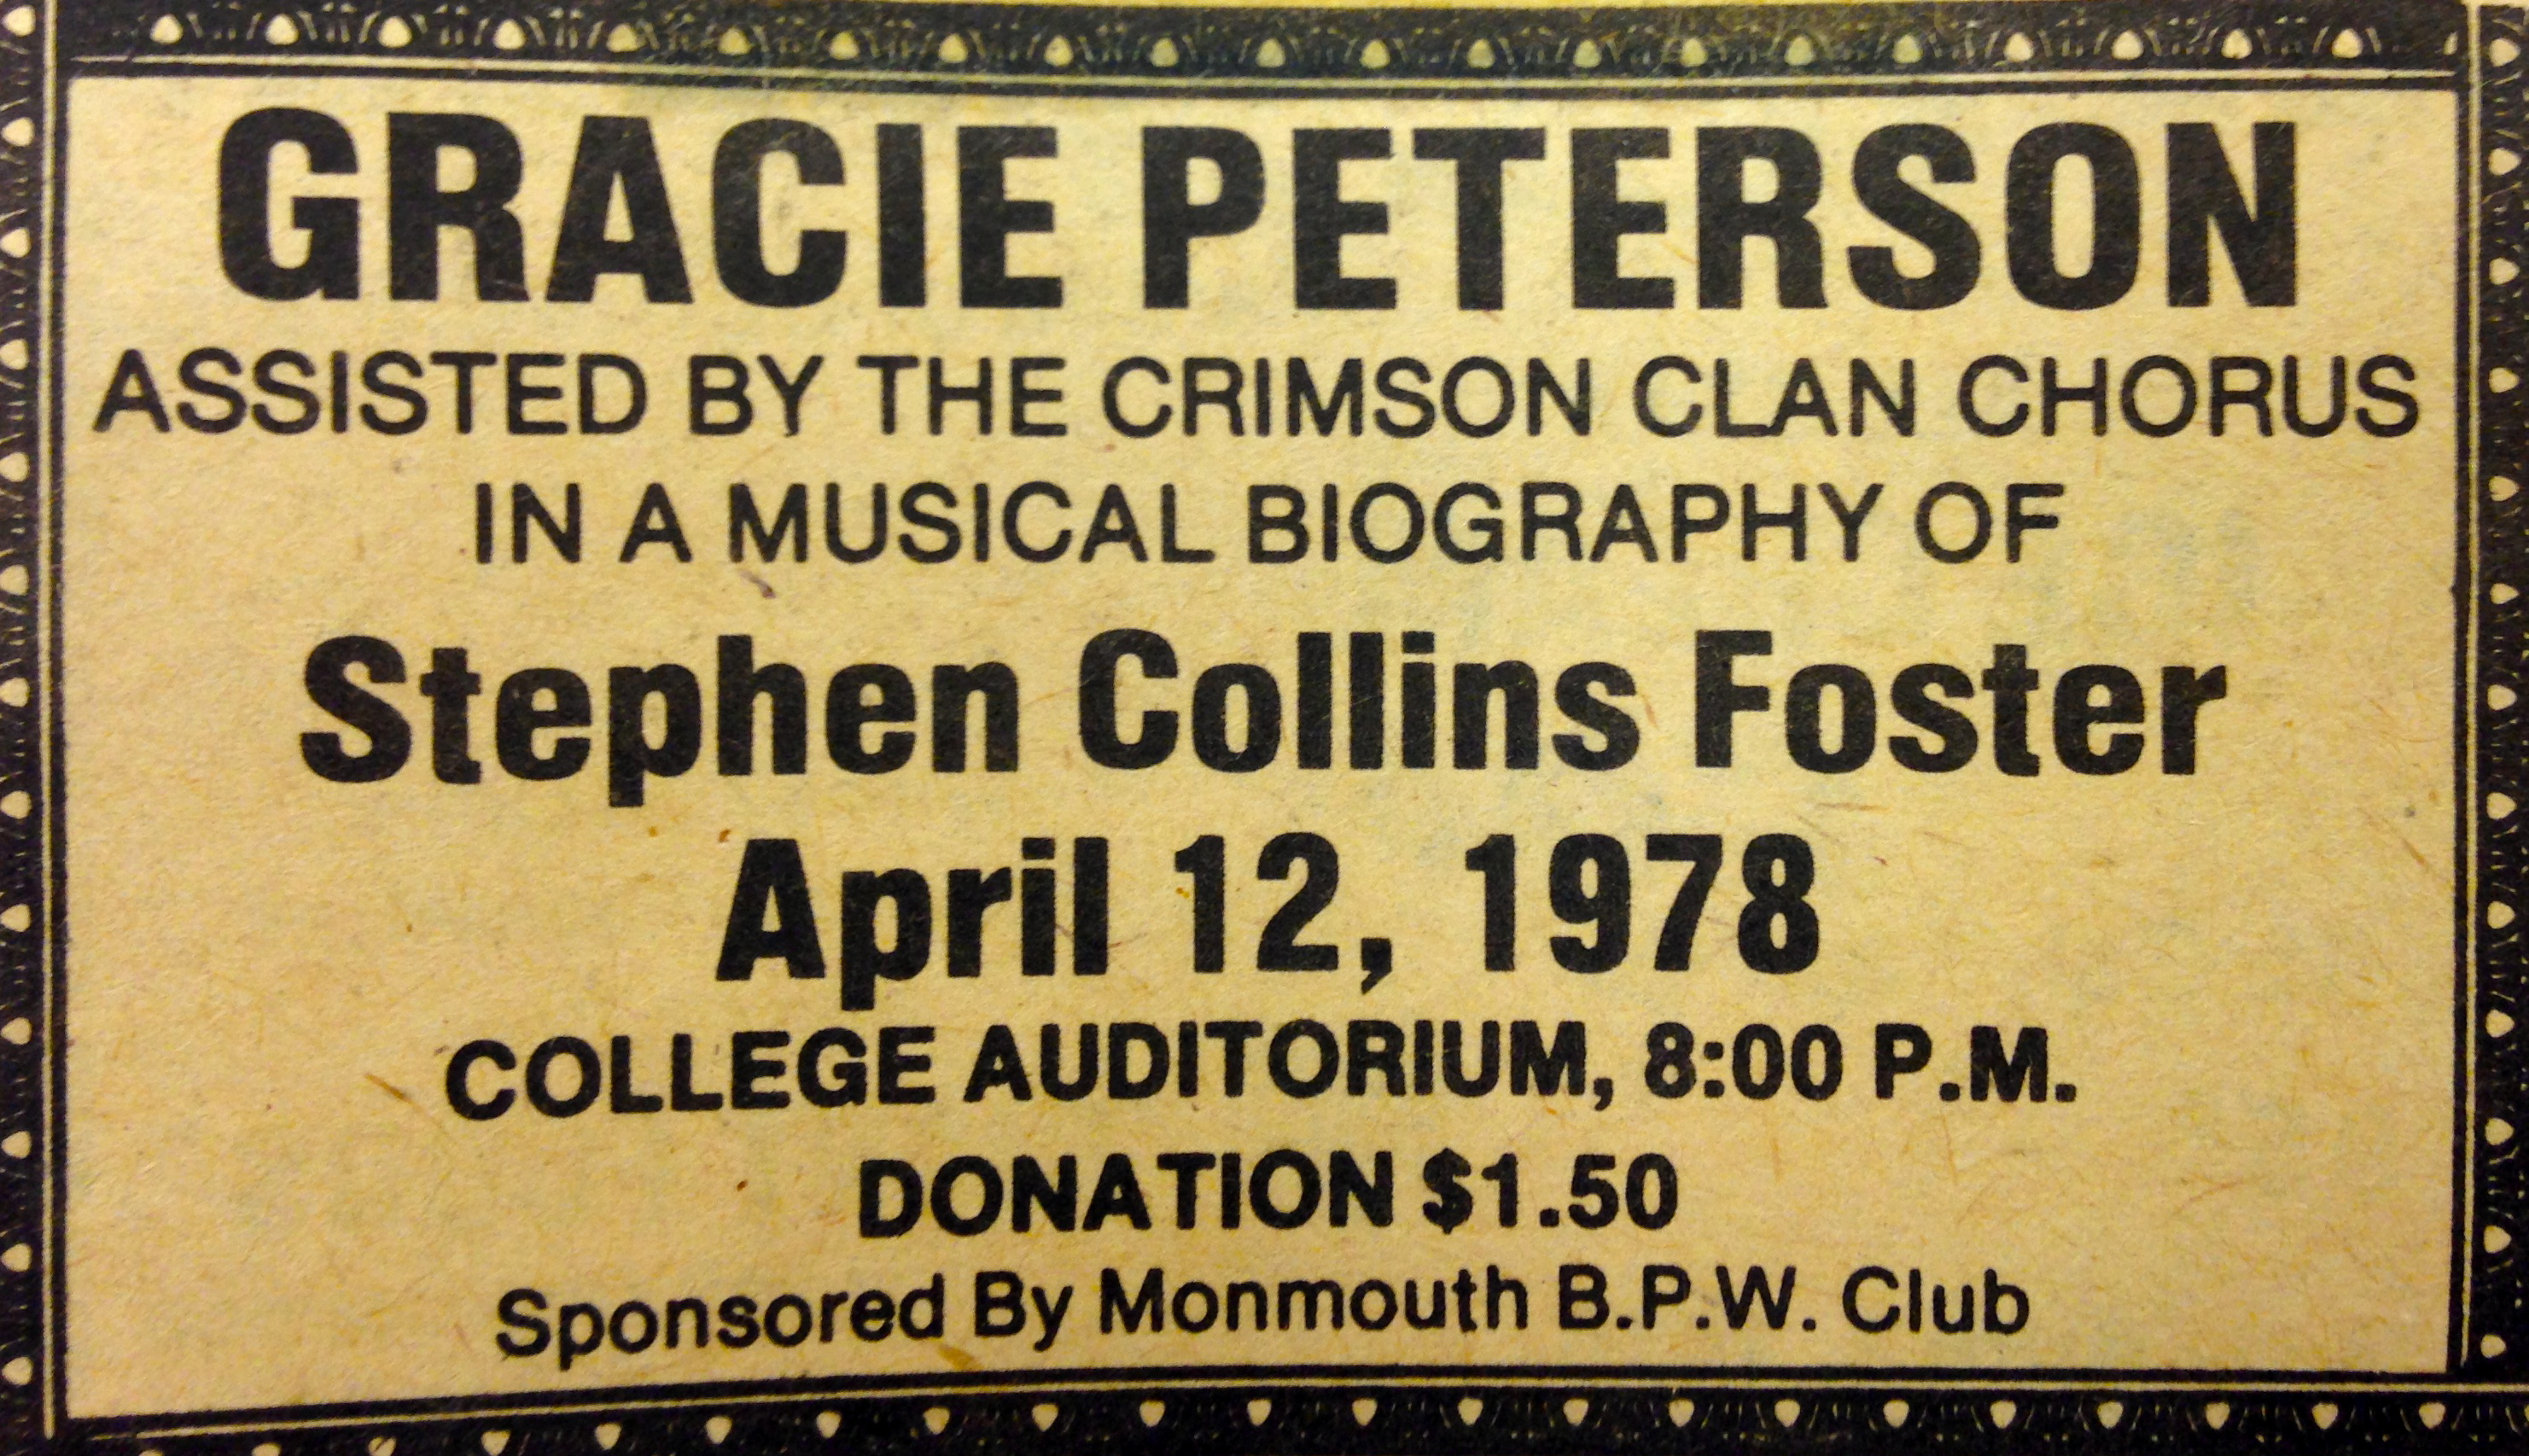 Stephen Collins Foster Musical Biography